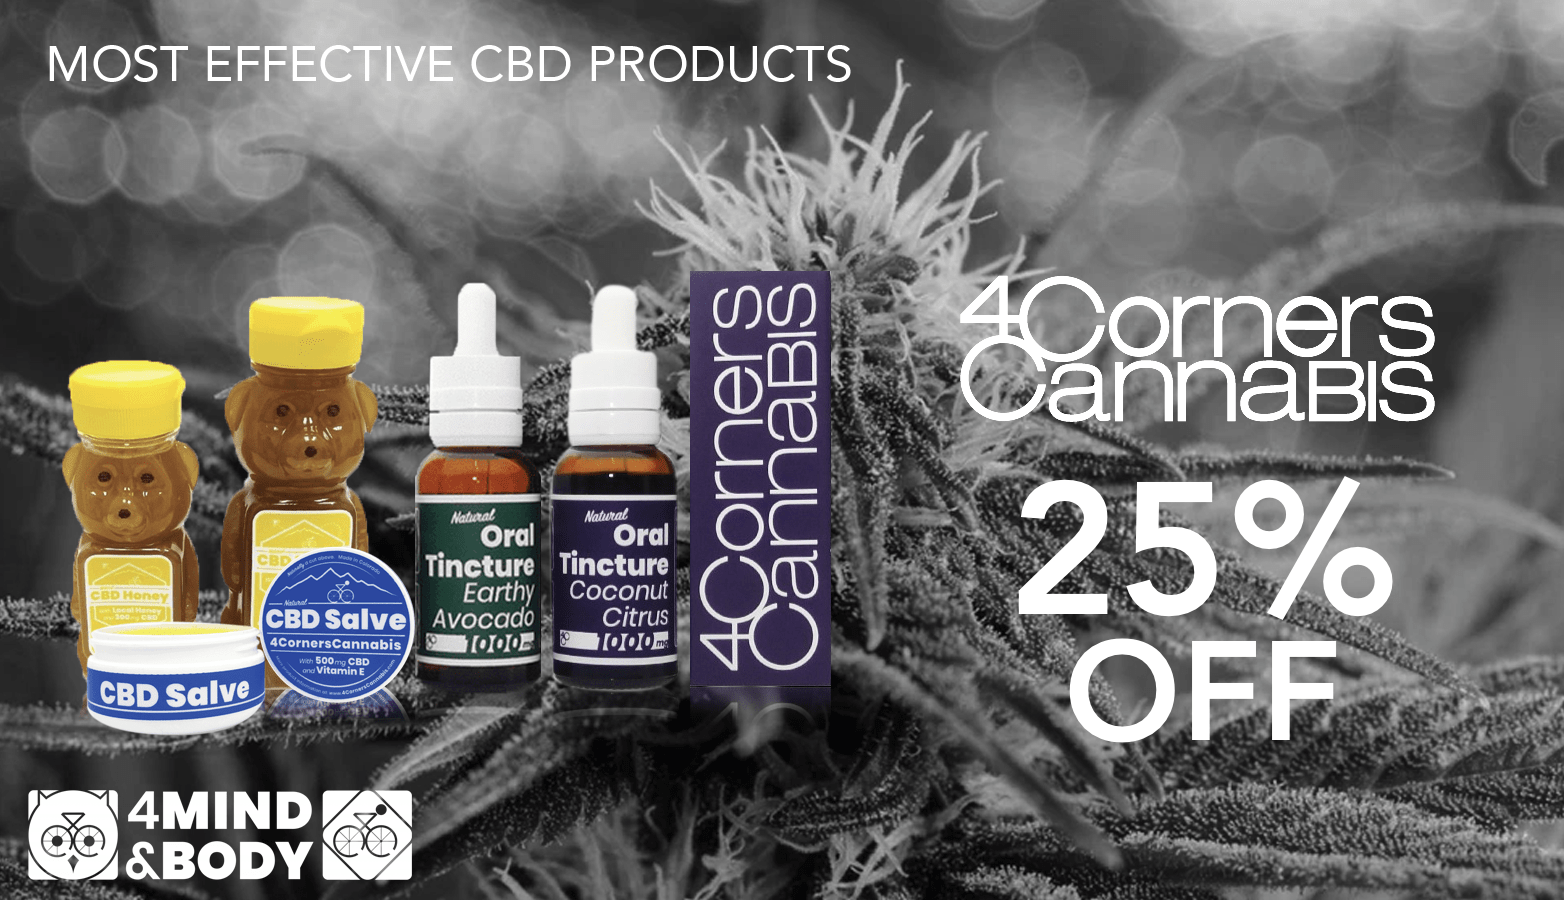 4 Corners Cannabis Coupon - Save On Cannabis